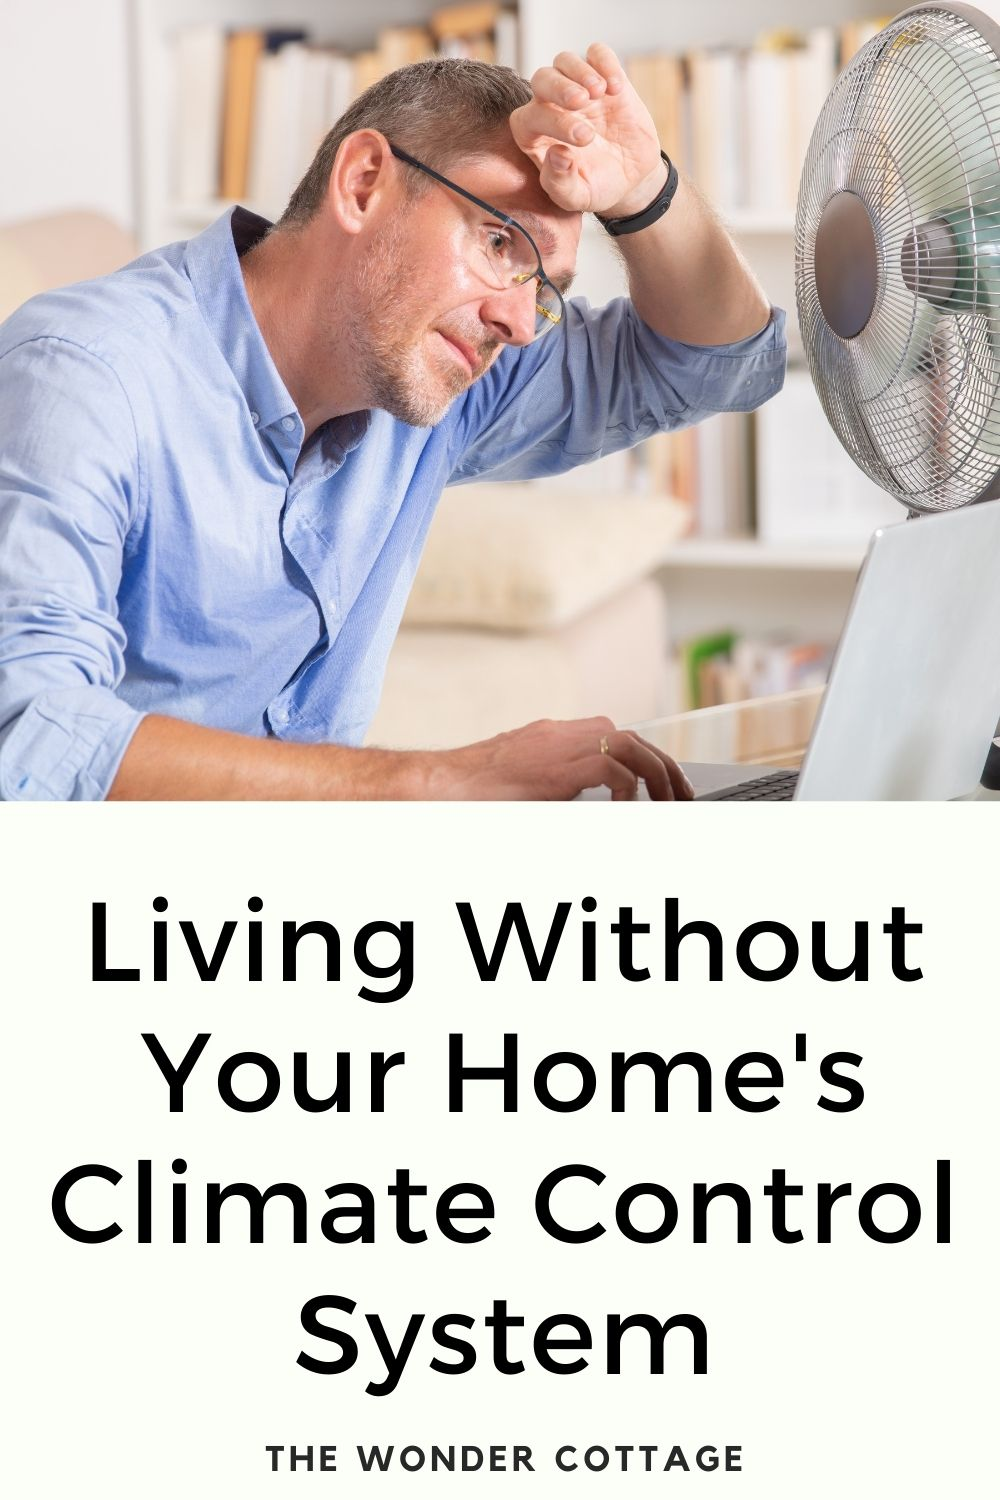 living without your home's climate control systems